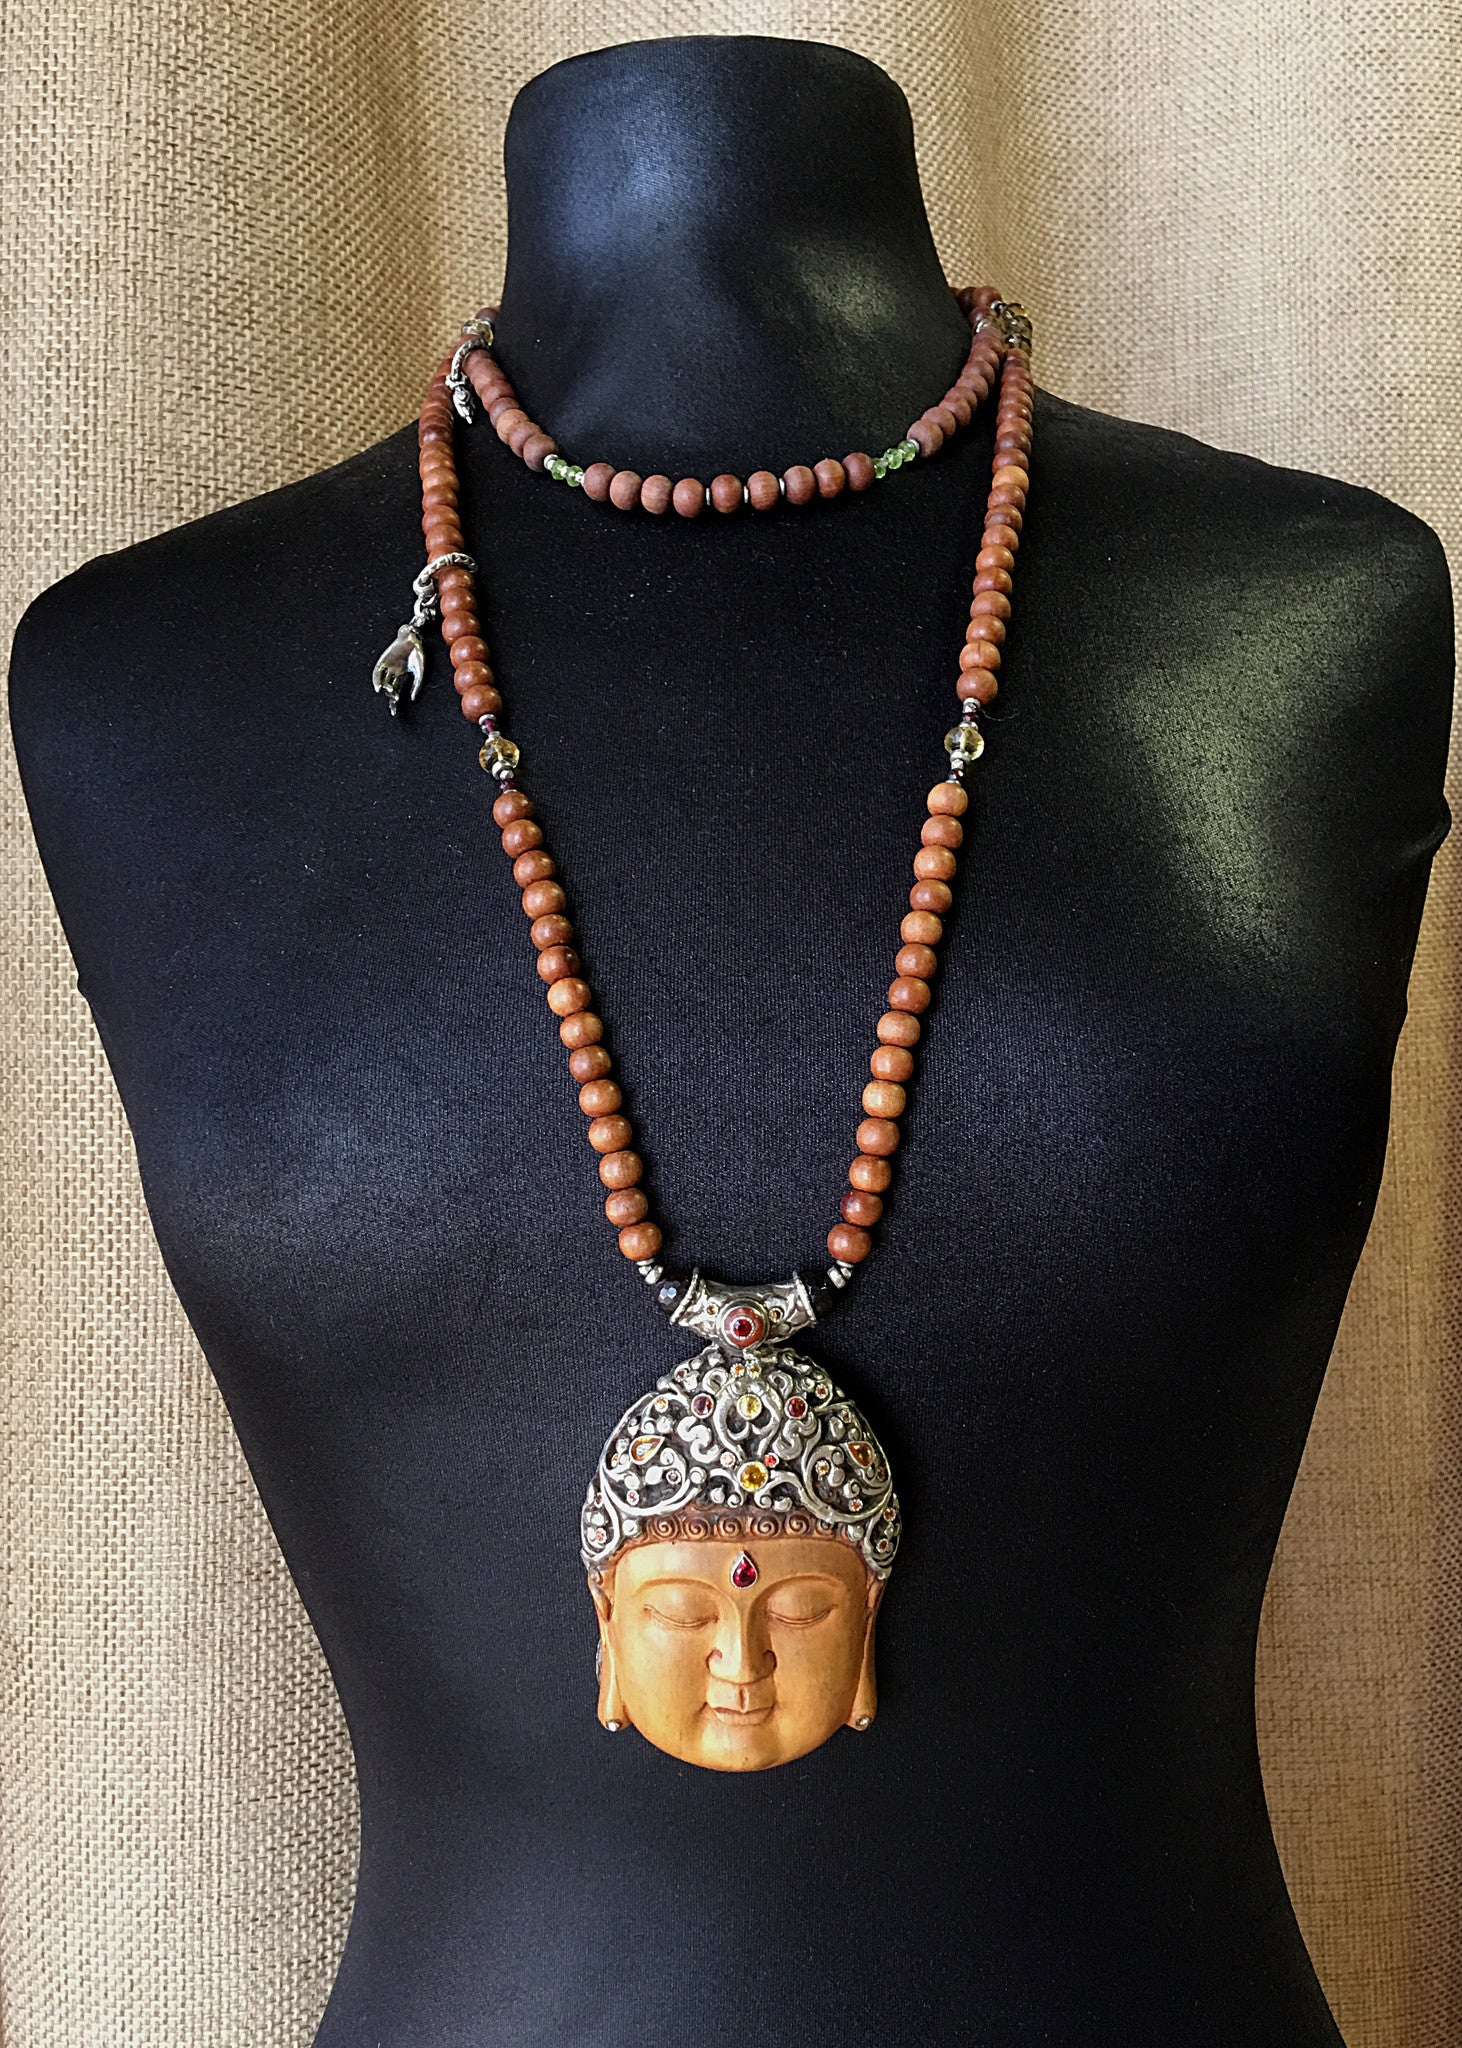 Sapphire Encrusted Buddha Necklace